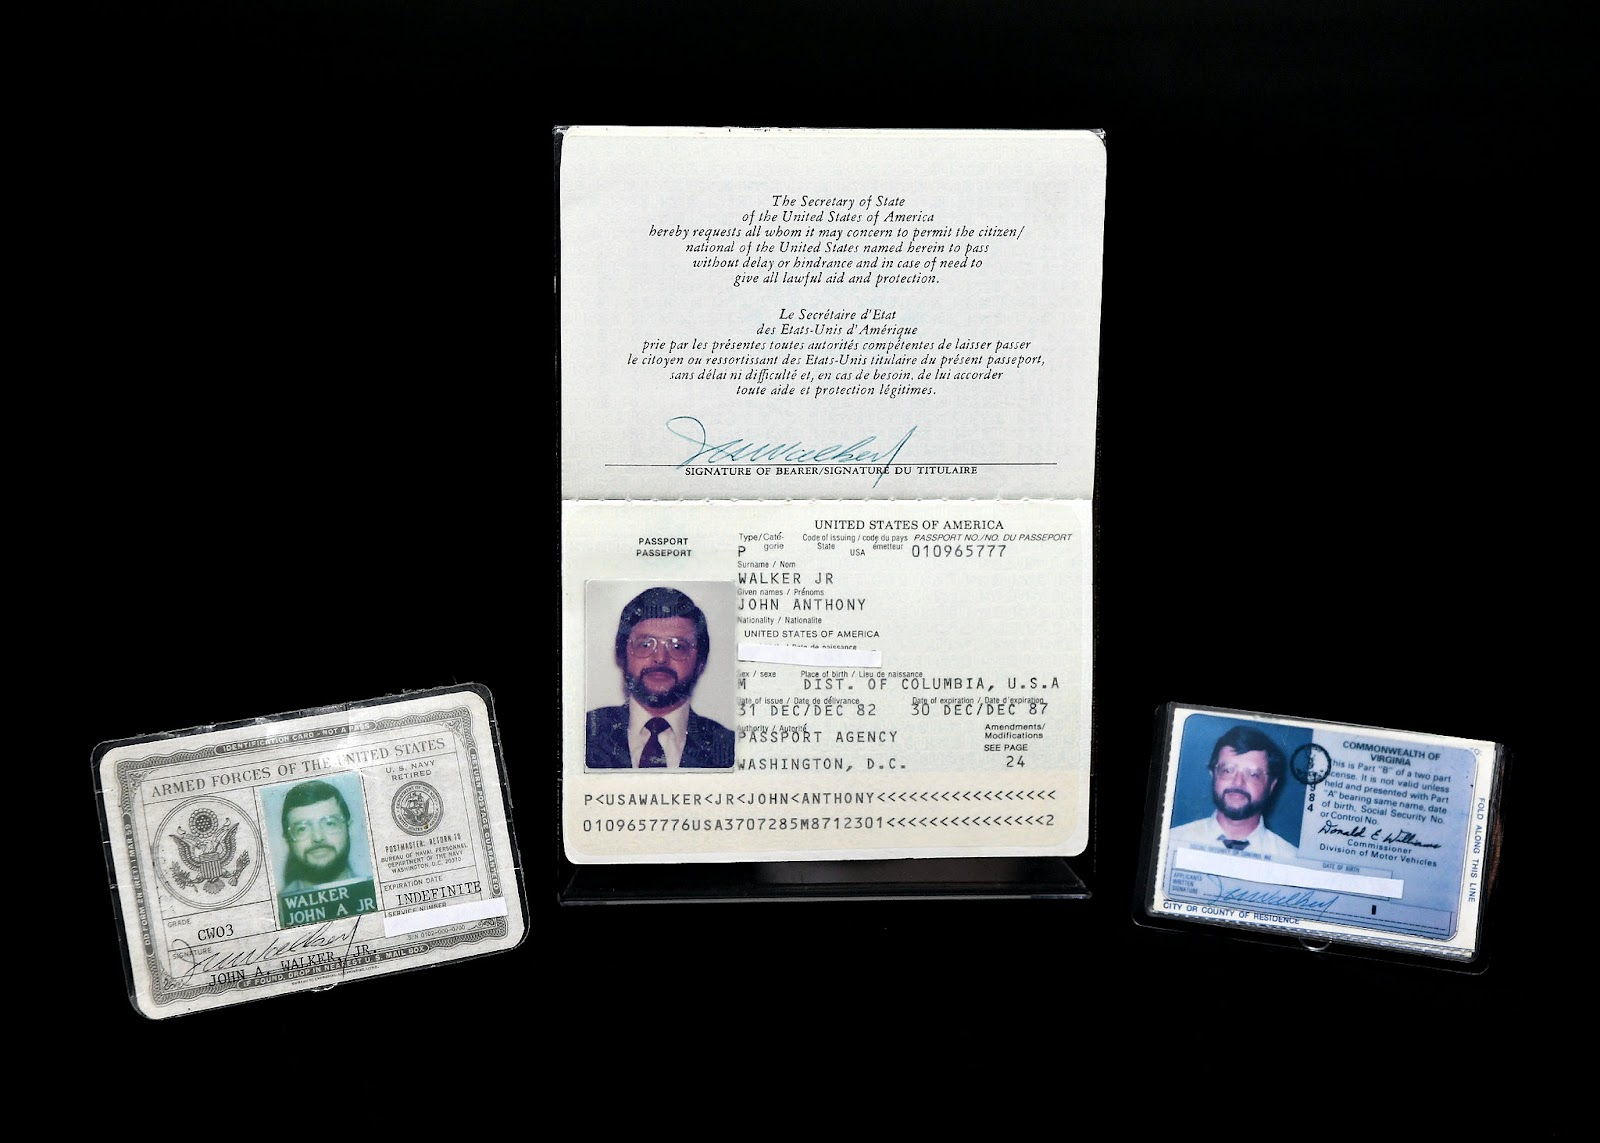 Identification documents used by convicted traitor John Anthony Walker Jr., a former U.S. Navy Warrant Officer who sold U.S. secrets to the Soviet Union during the Cold War. Walker was sentenced to life in prison.